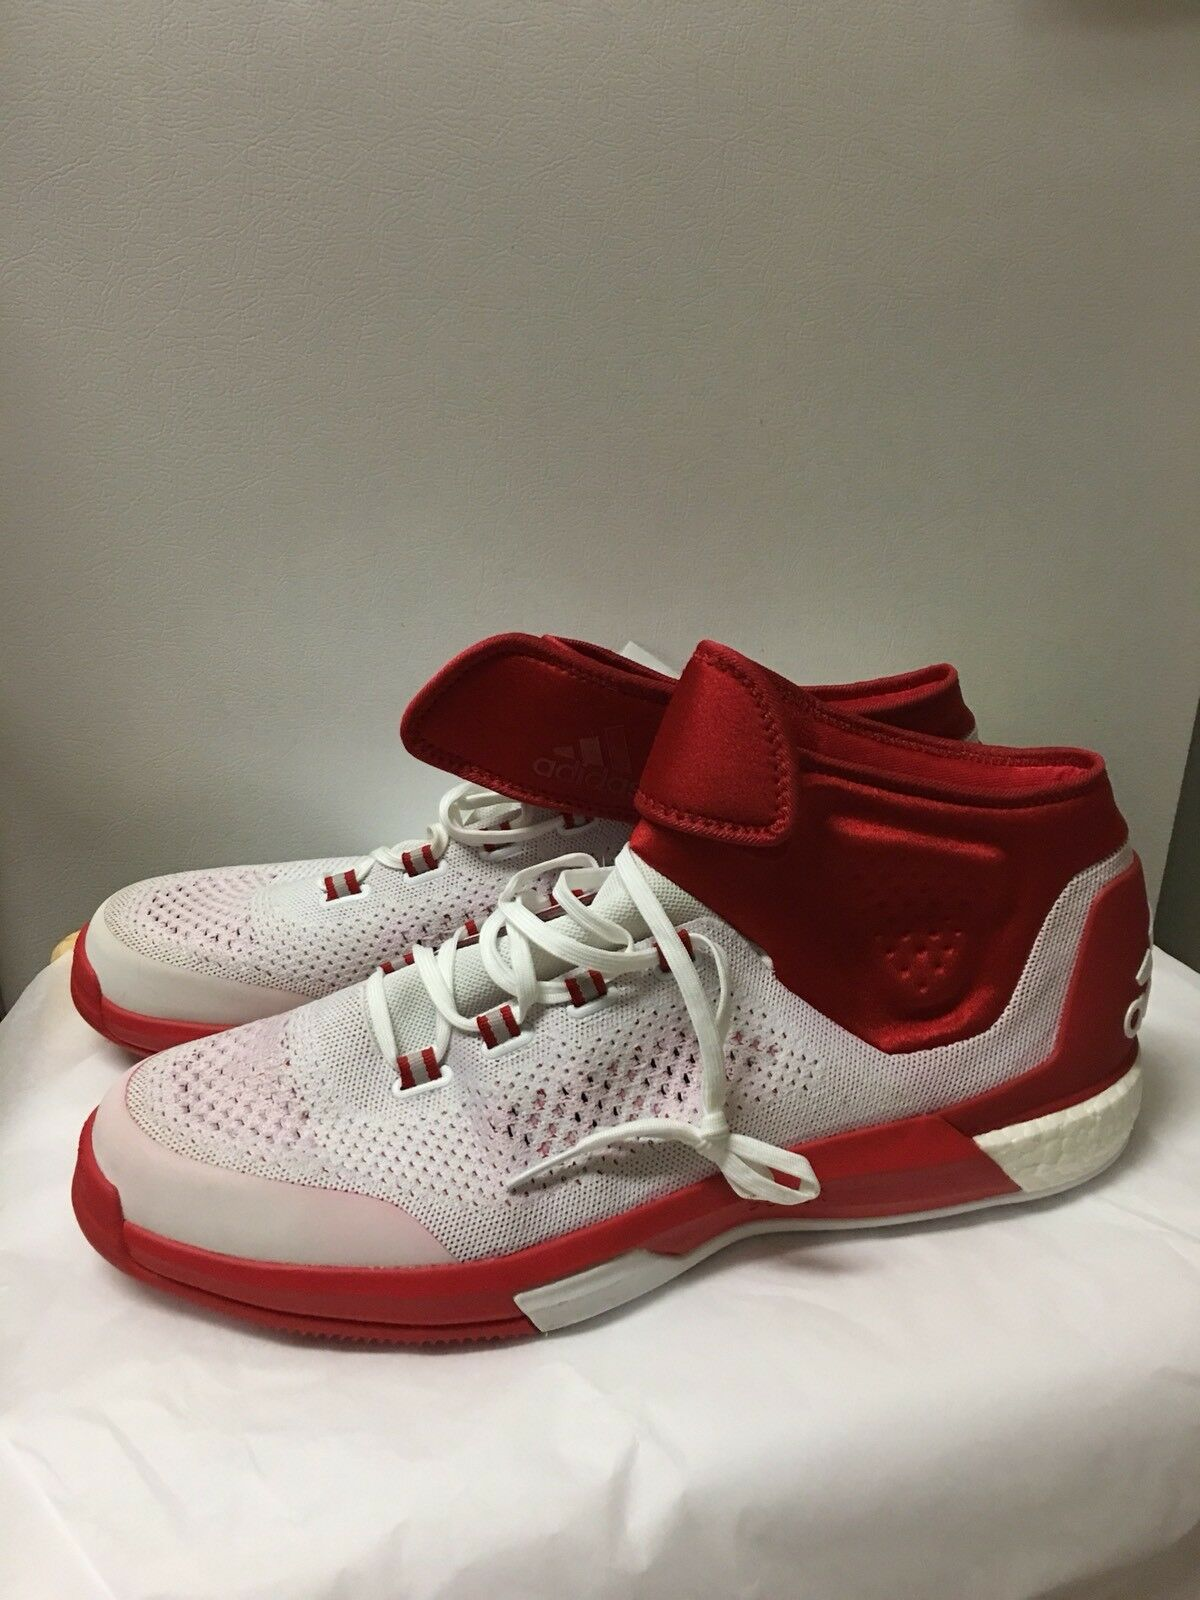 Adidas Crazylight Boost Techfit Men's Basketball Shoes Size 20 Red & White